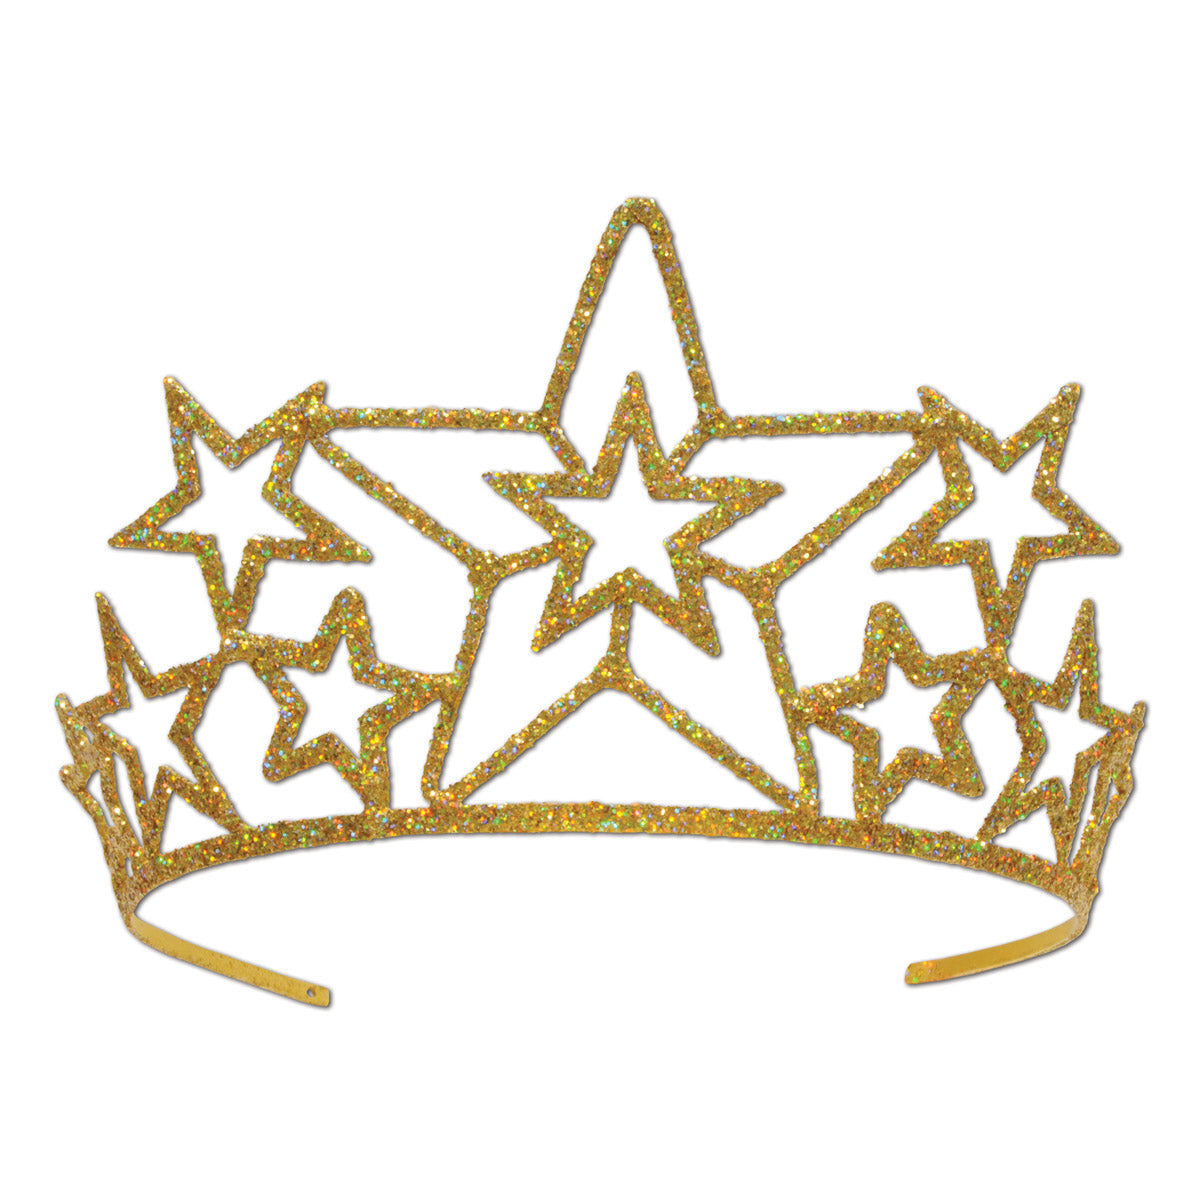 Glittered Metal Star Tiara by Beistle - Awards Night Theme Decorations